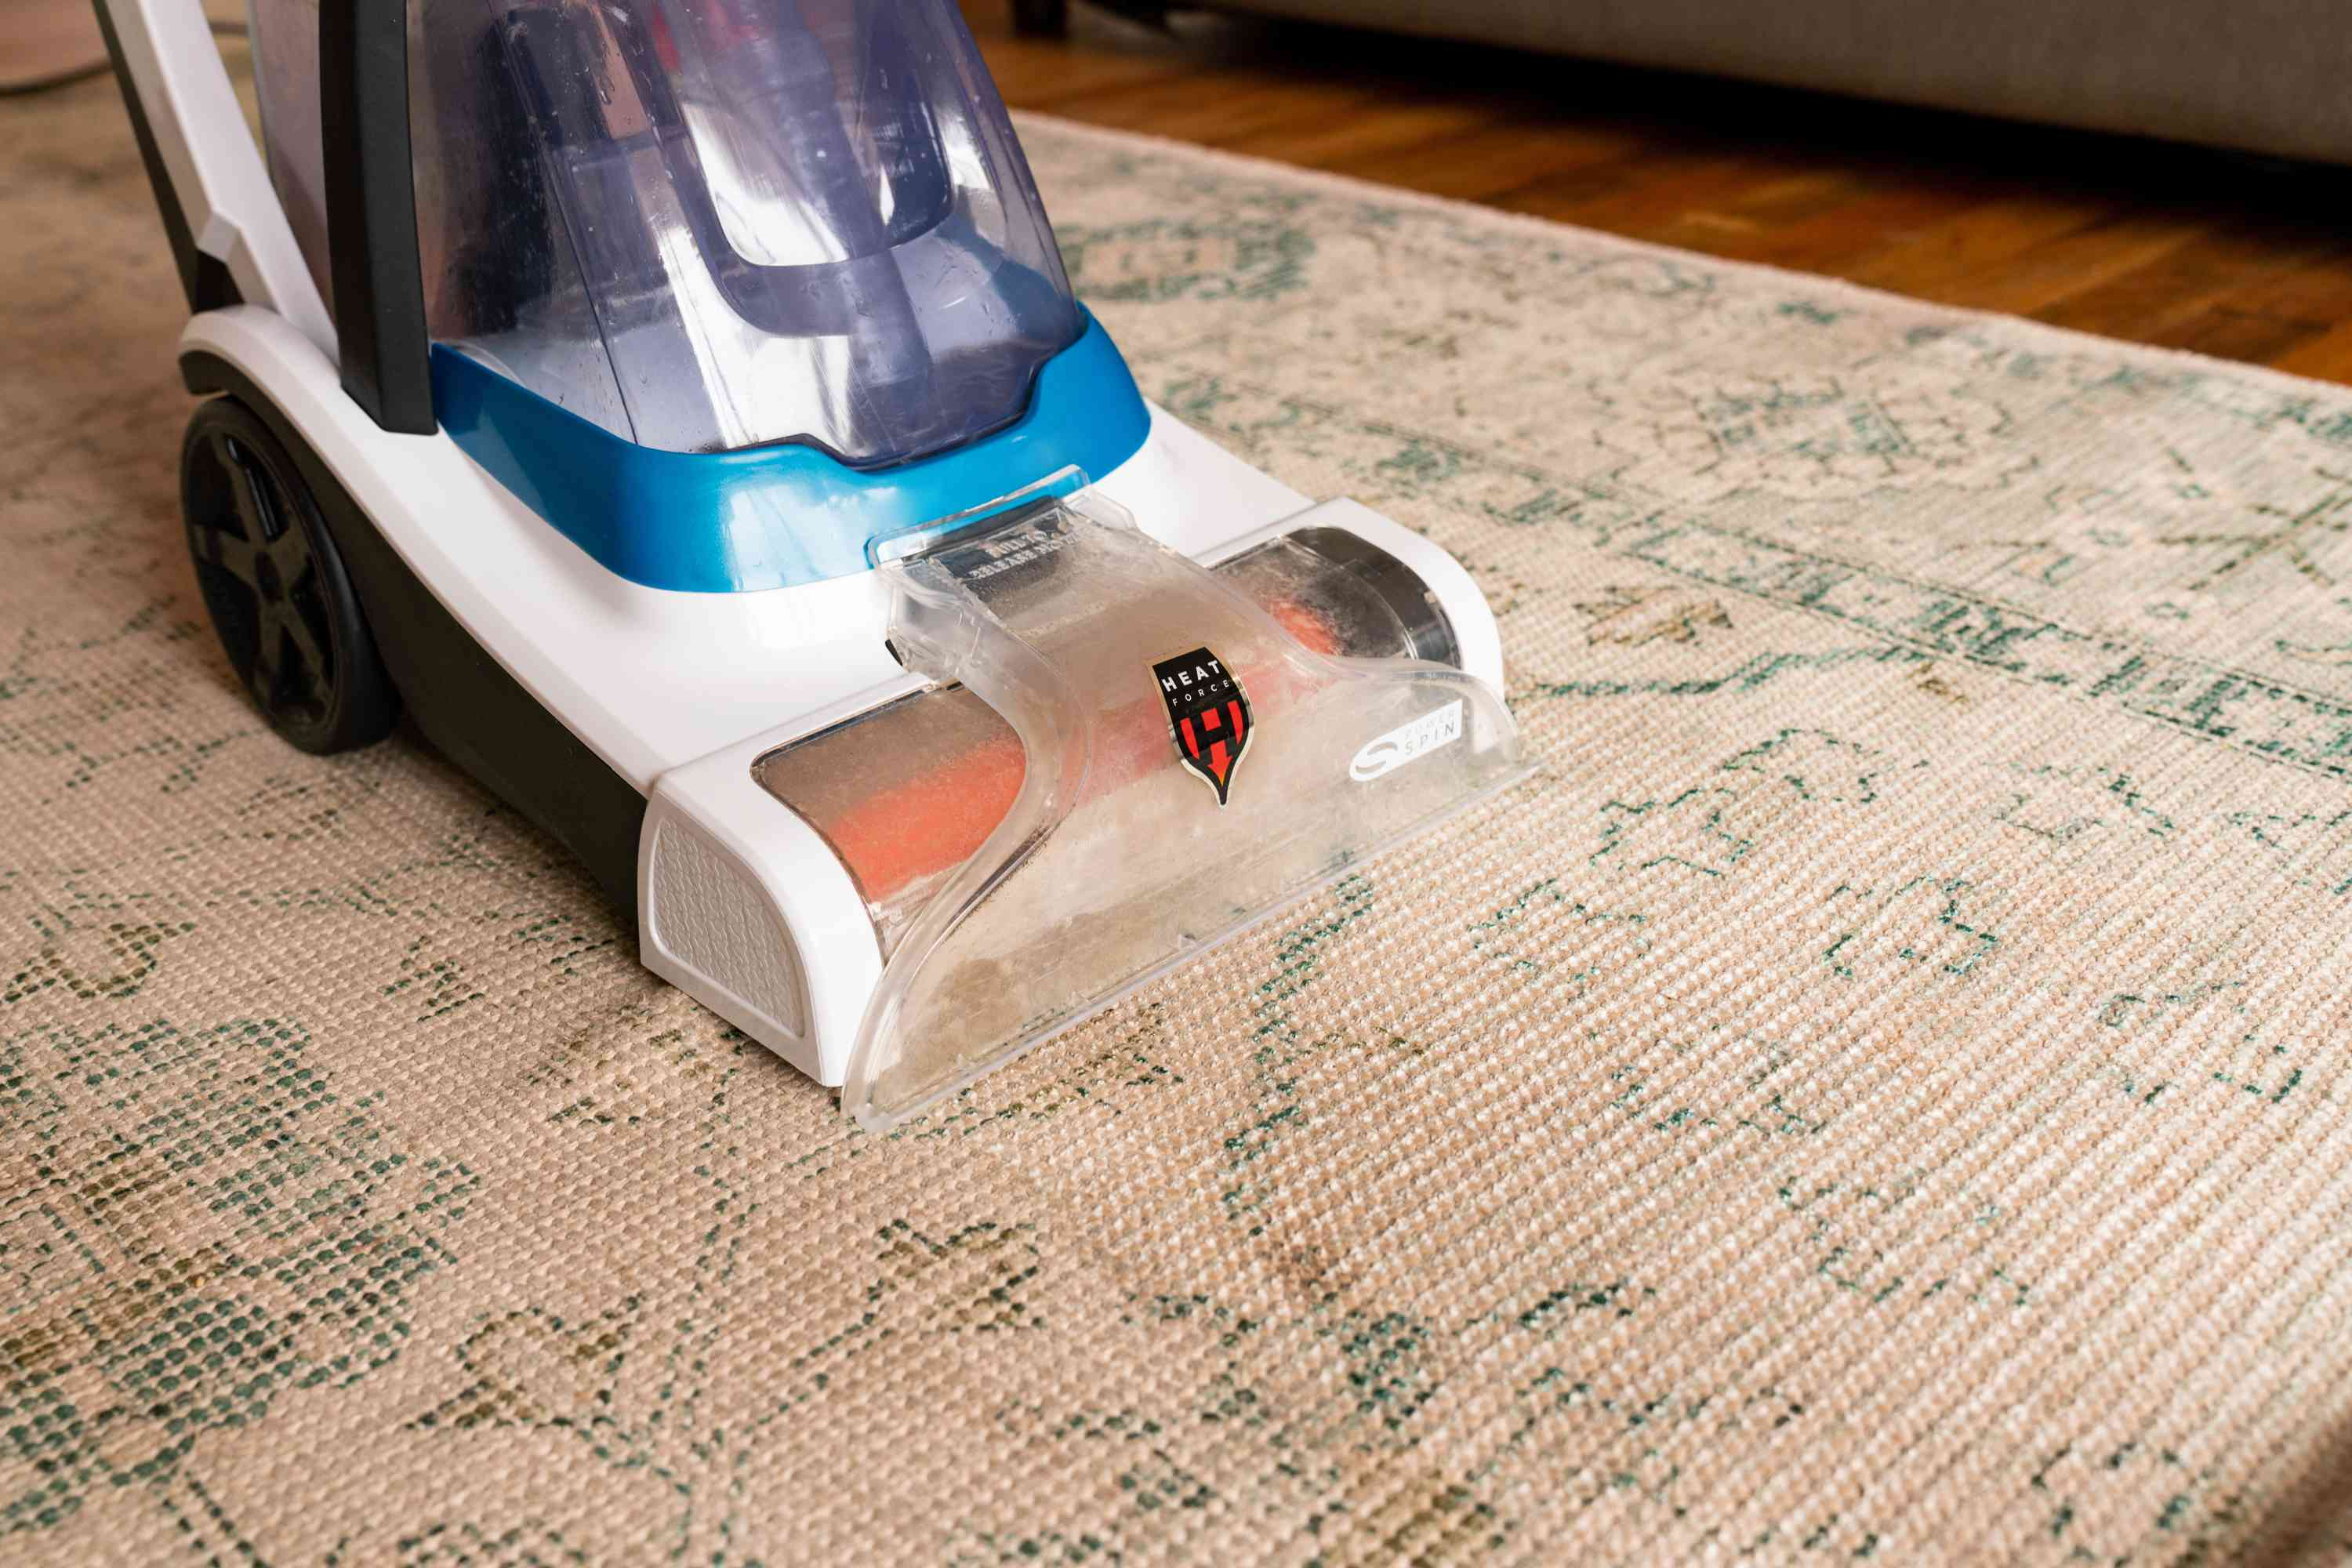 White and blue steam cleaner passing over old tan rug with hit water extraction